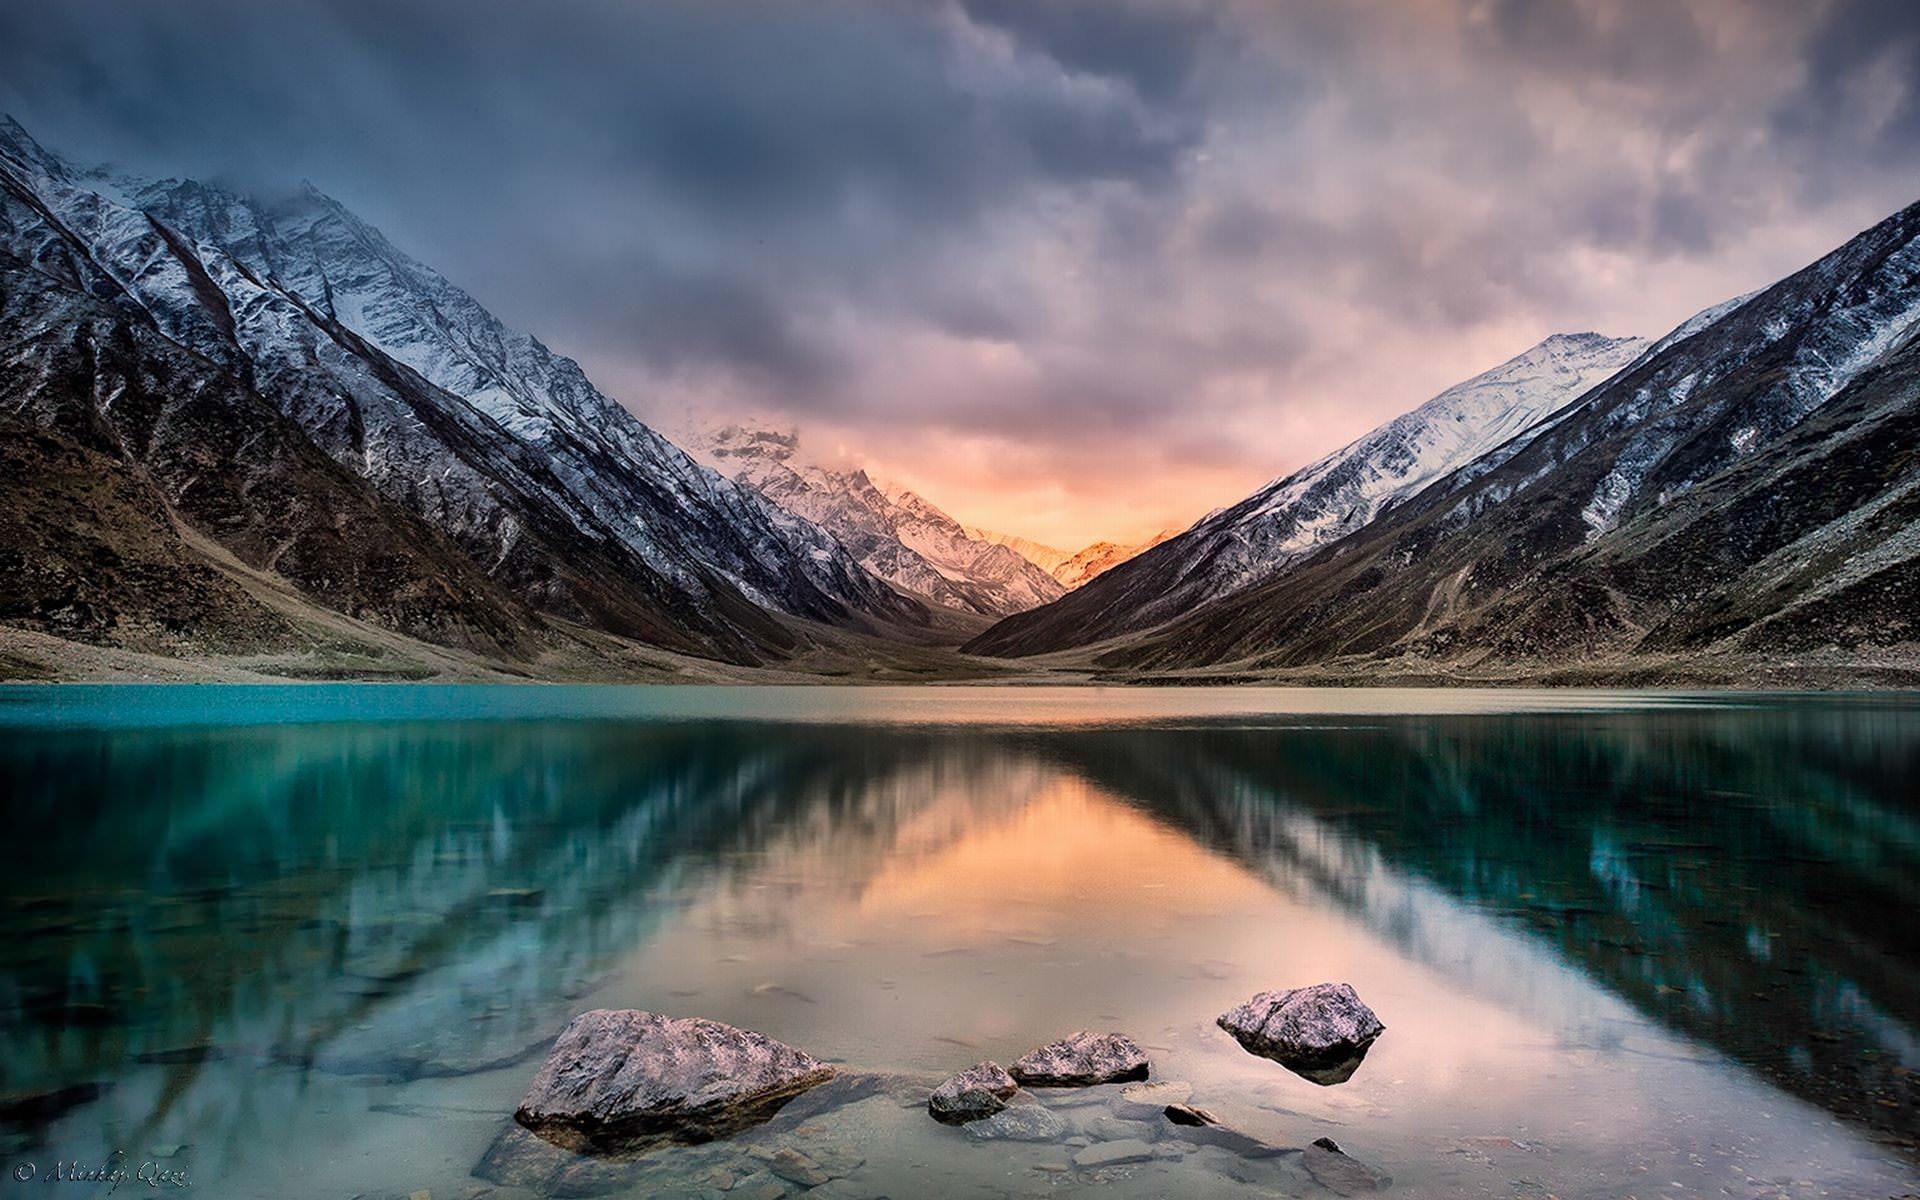 Jheel Saif Ul Malook Lake Wallpaper